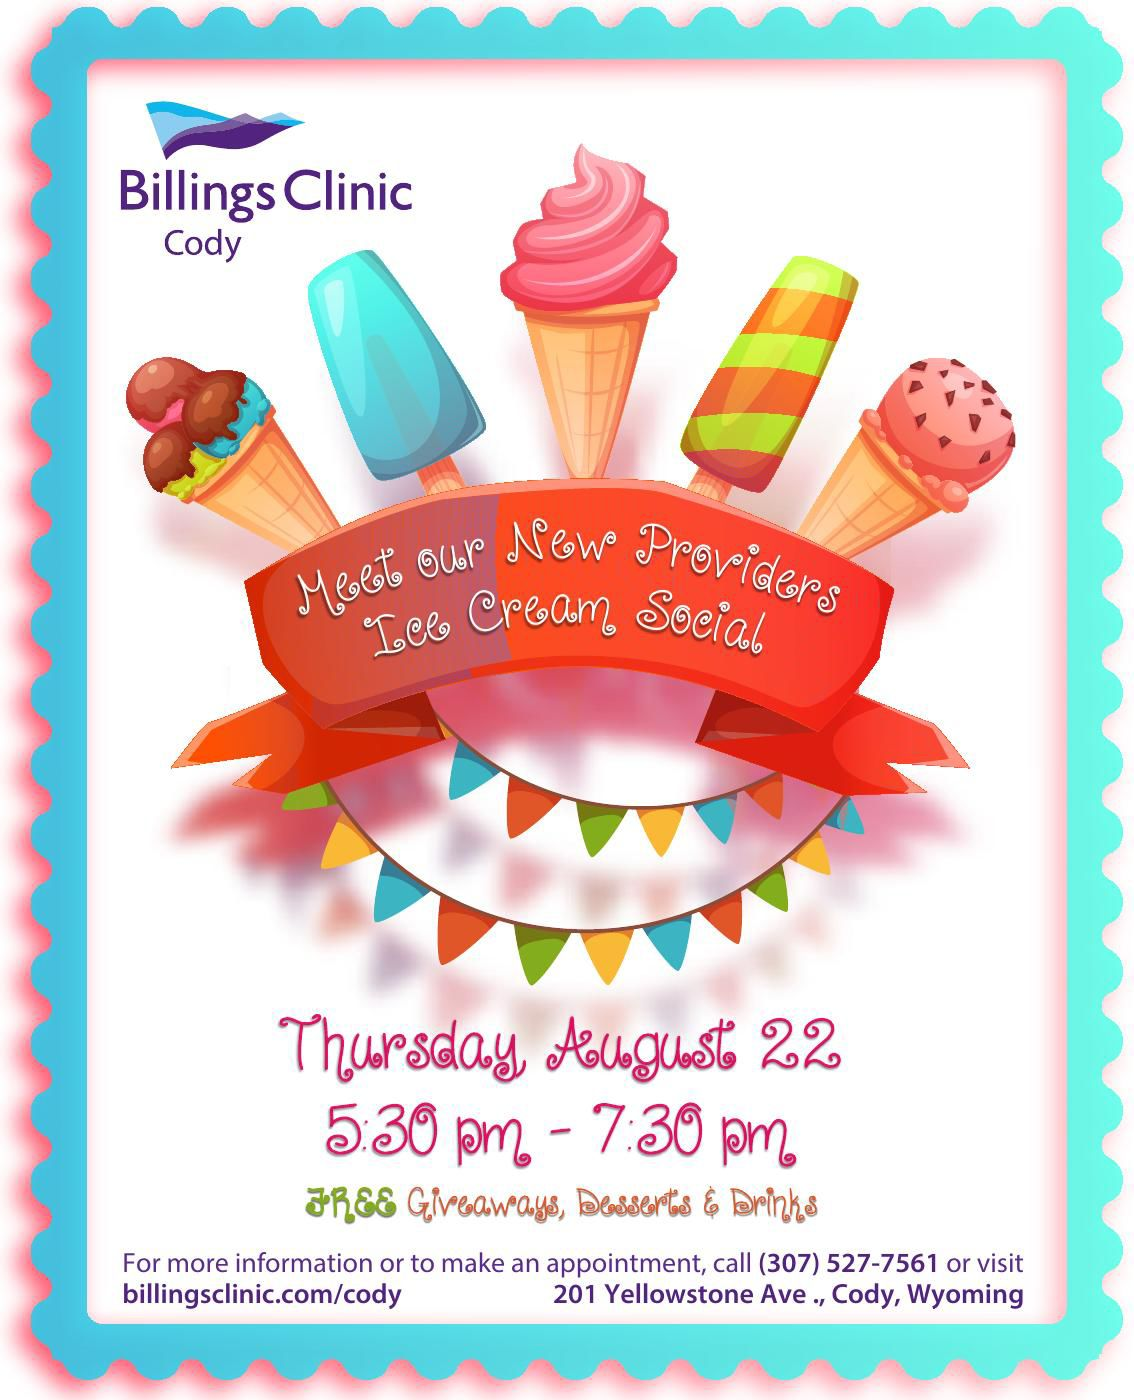 009708_billings_clinic_ice_cream_social